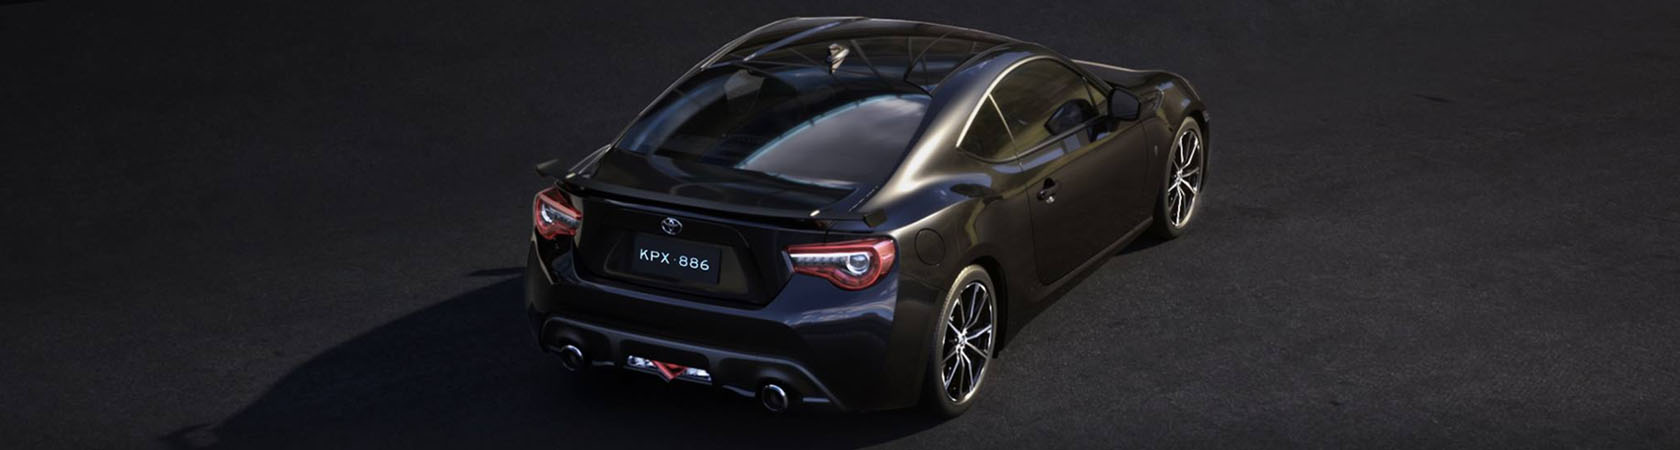 Castle Hill Toyota 86